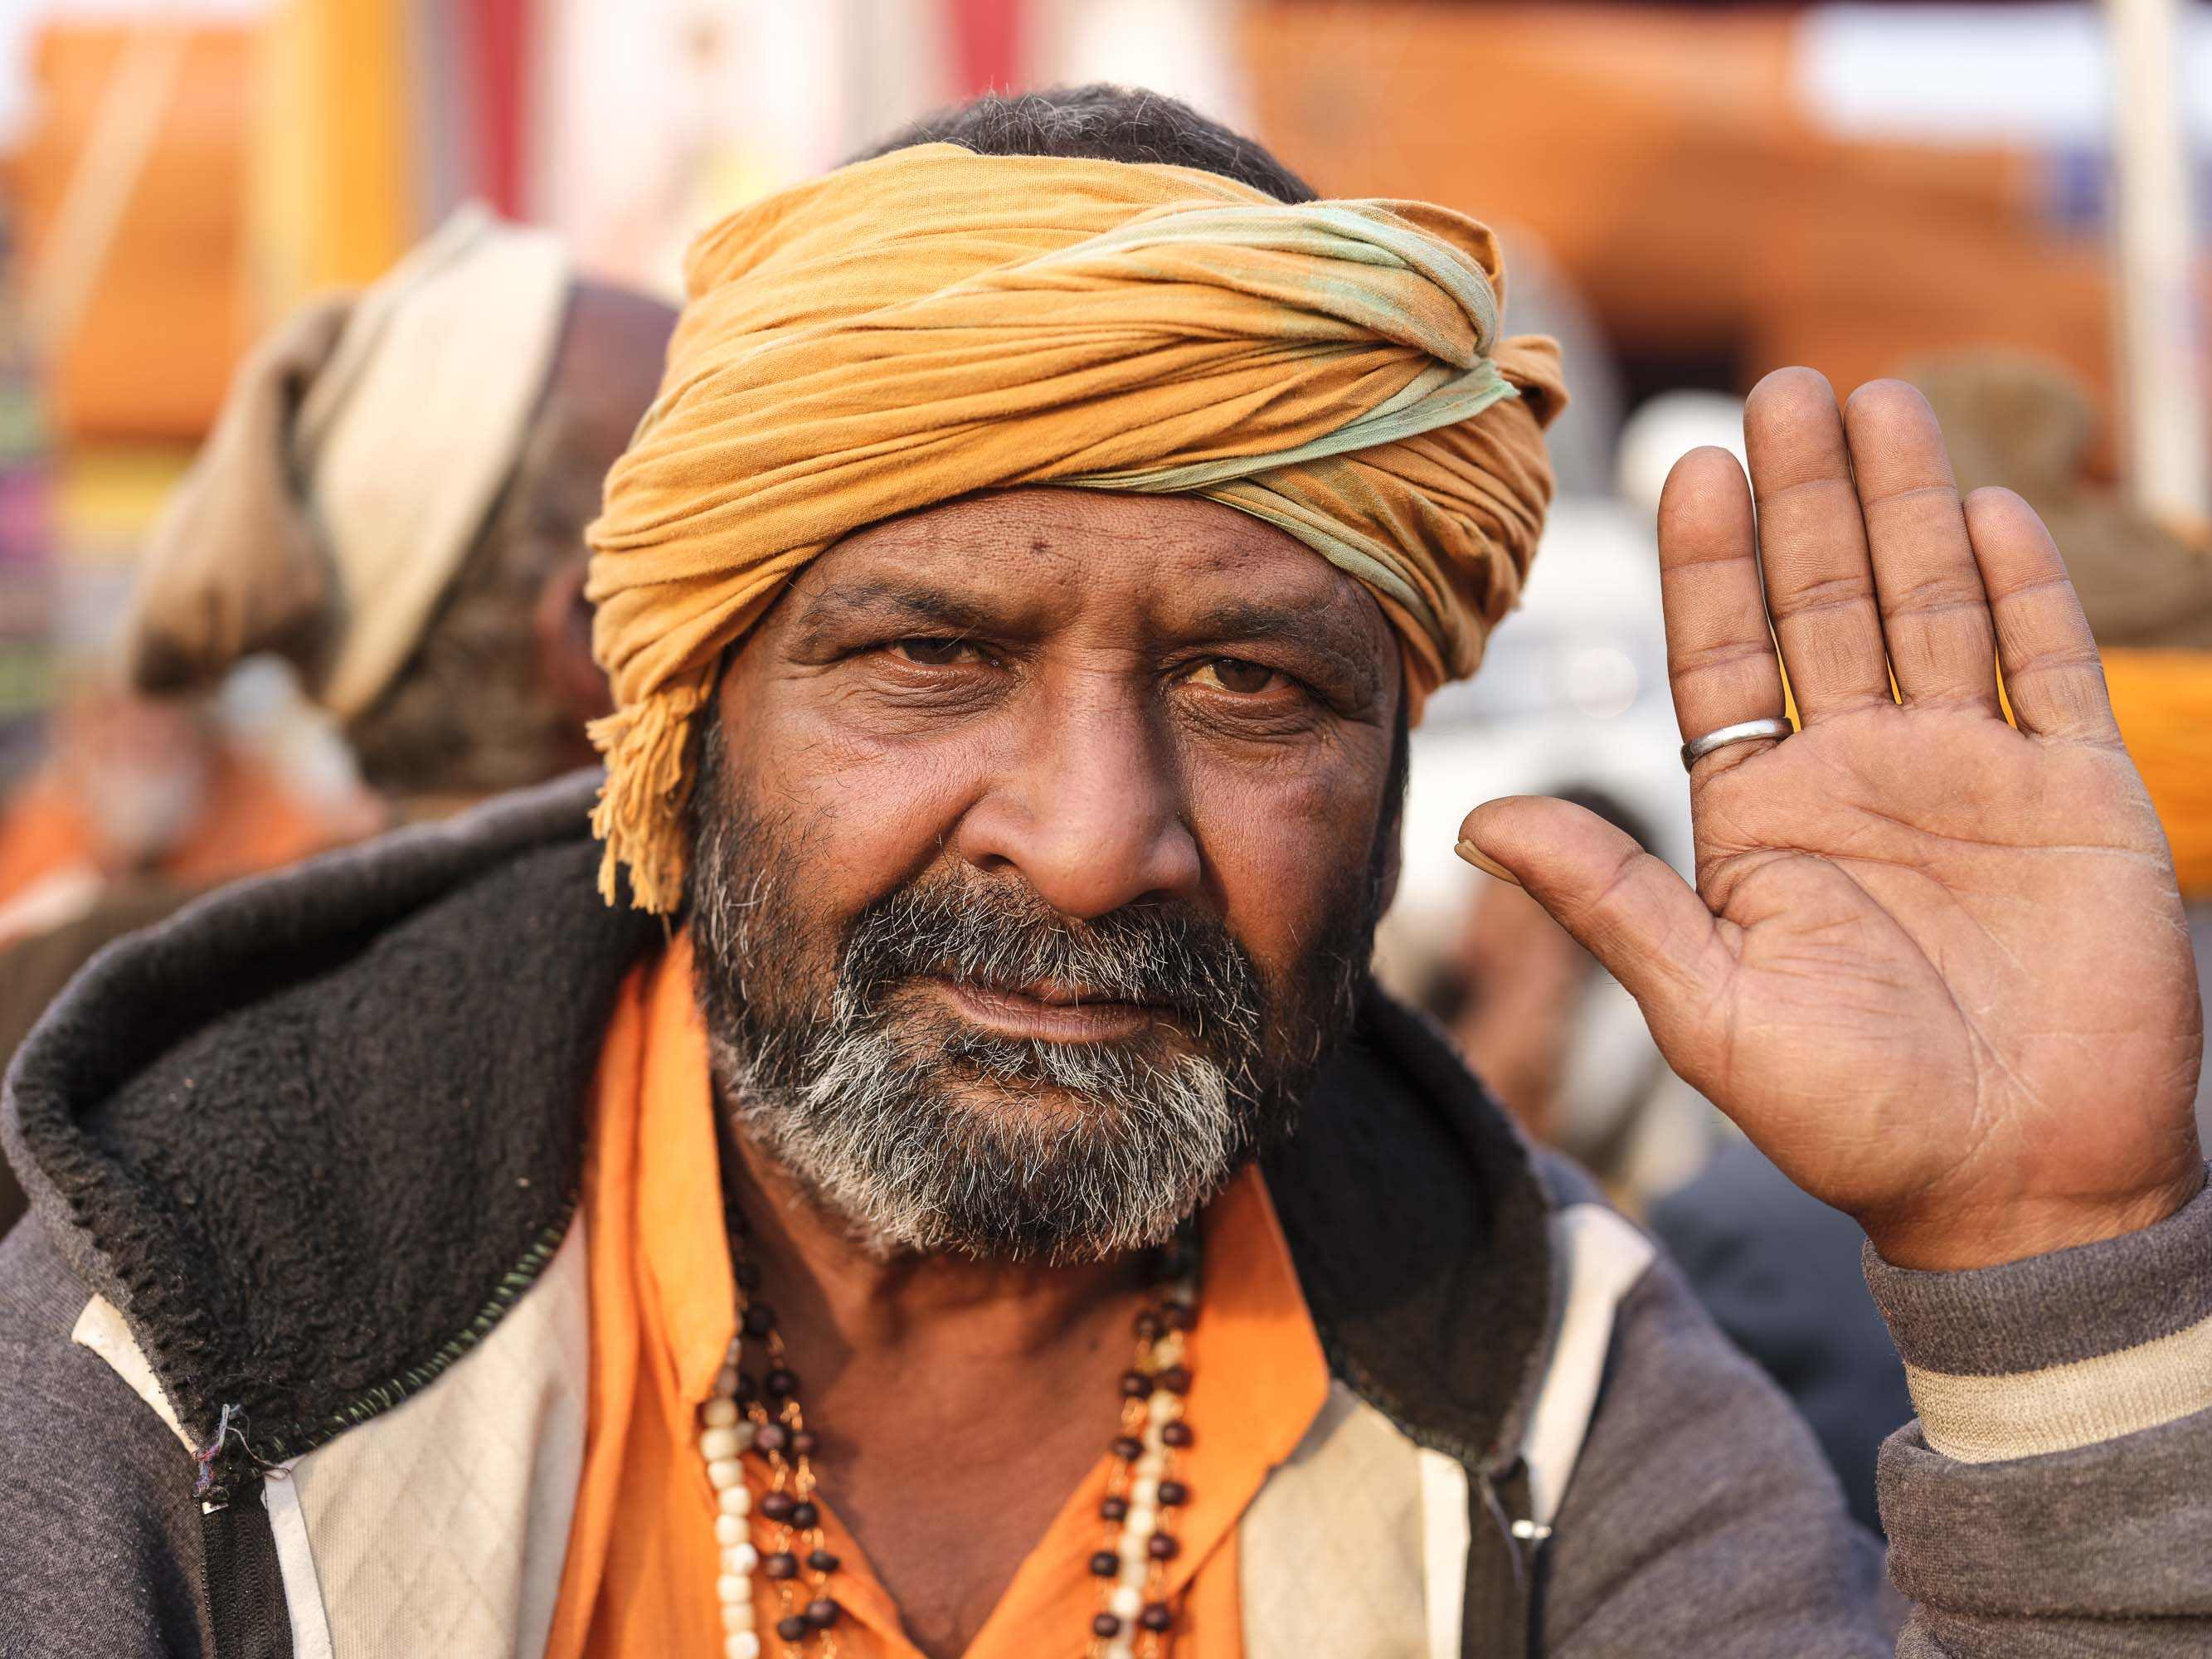 pilgrims Kumbh mela 2019 India Allahabad Prayagraj Ardh hindu religious Festival event rivers photographer jose jeuland photography